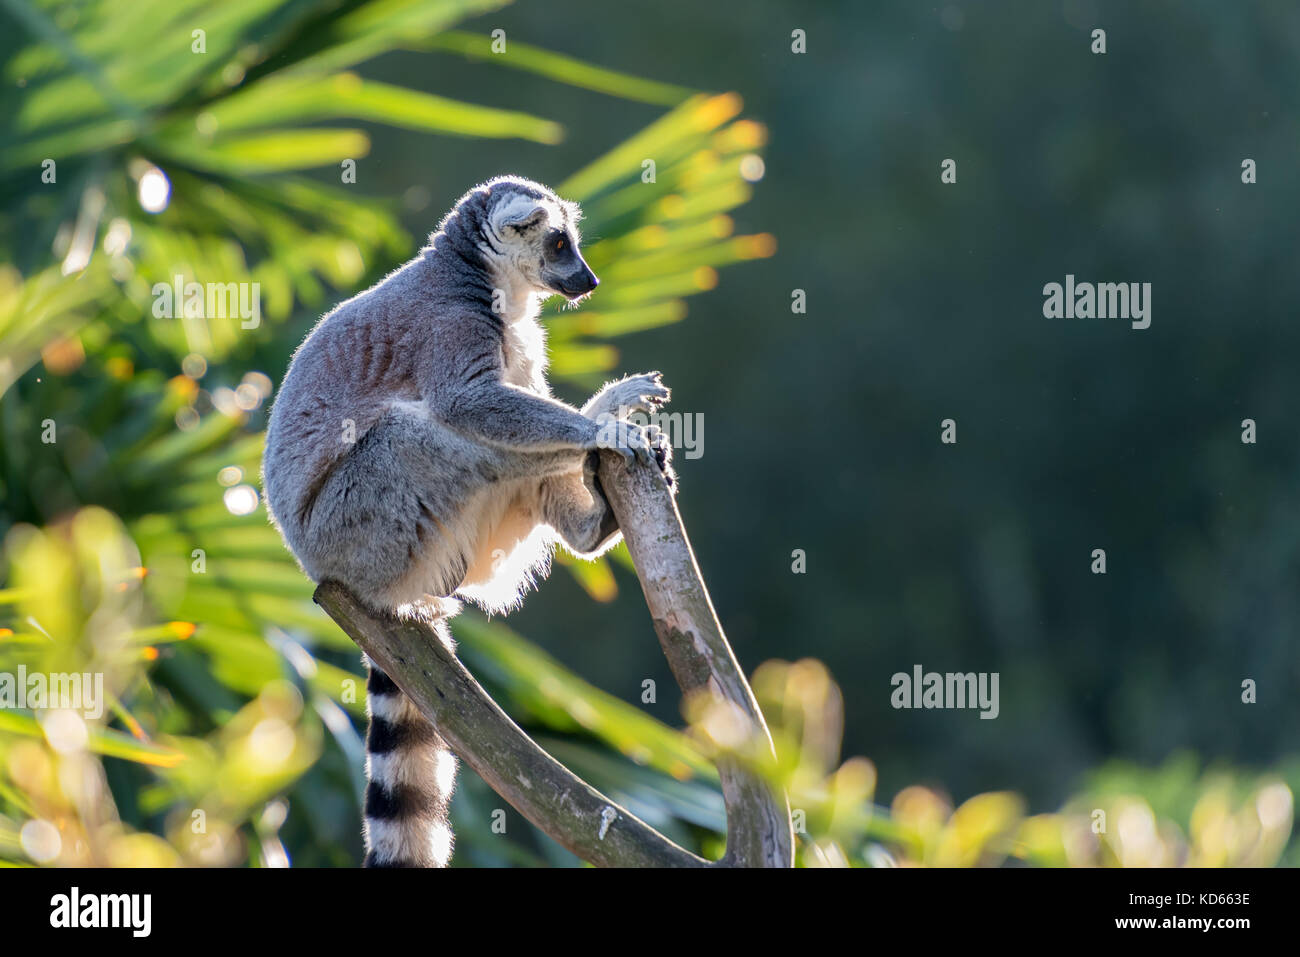 Lemur maki catta of Madagascaer sitted on a tree's branch, backlight lighting - Stock Image